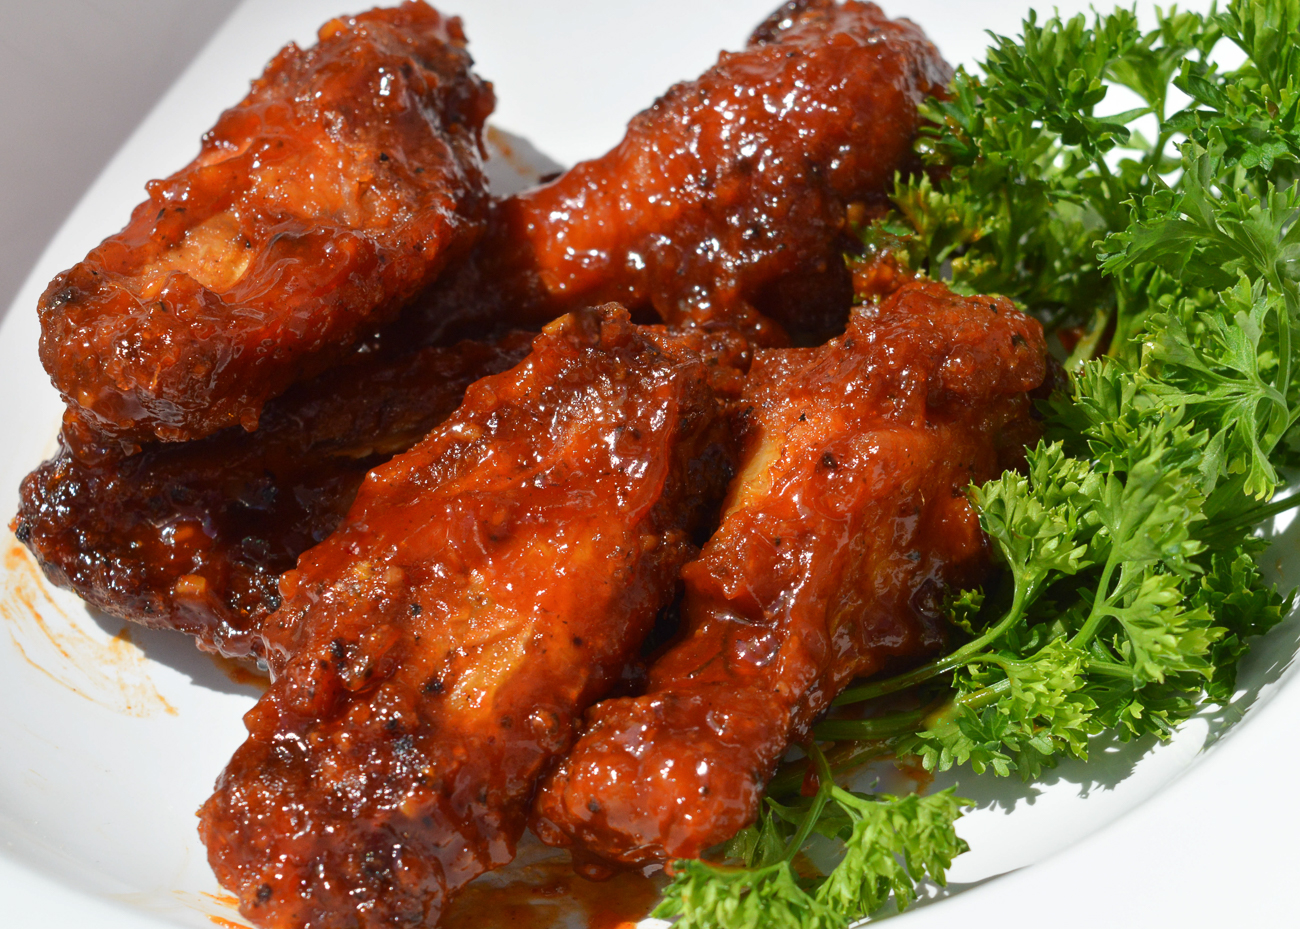 BBQ chicken wings{ }/ Image: Scott Dittgen // Published: 10.8.20